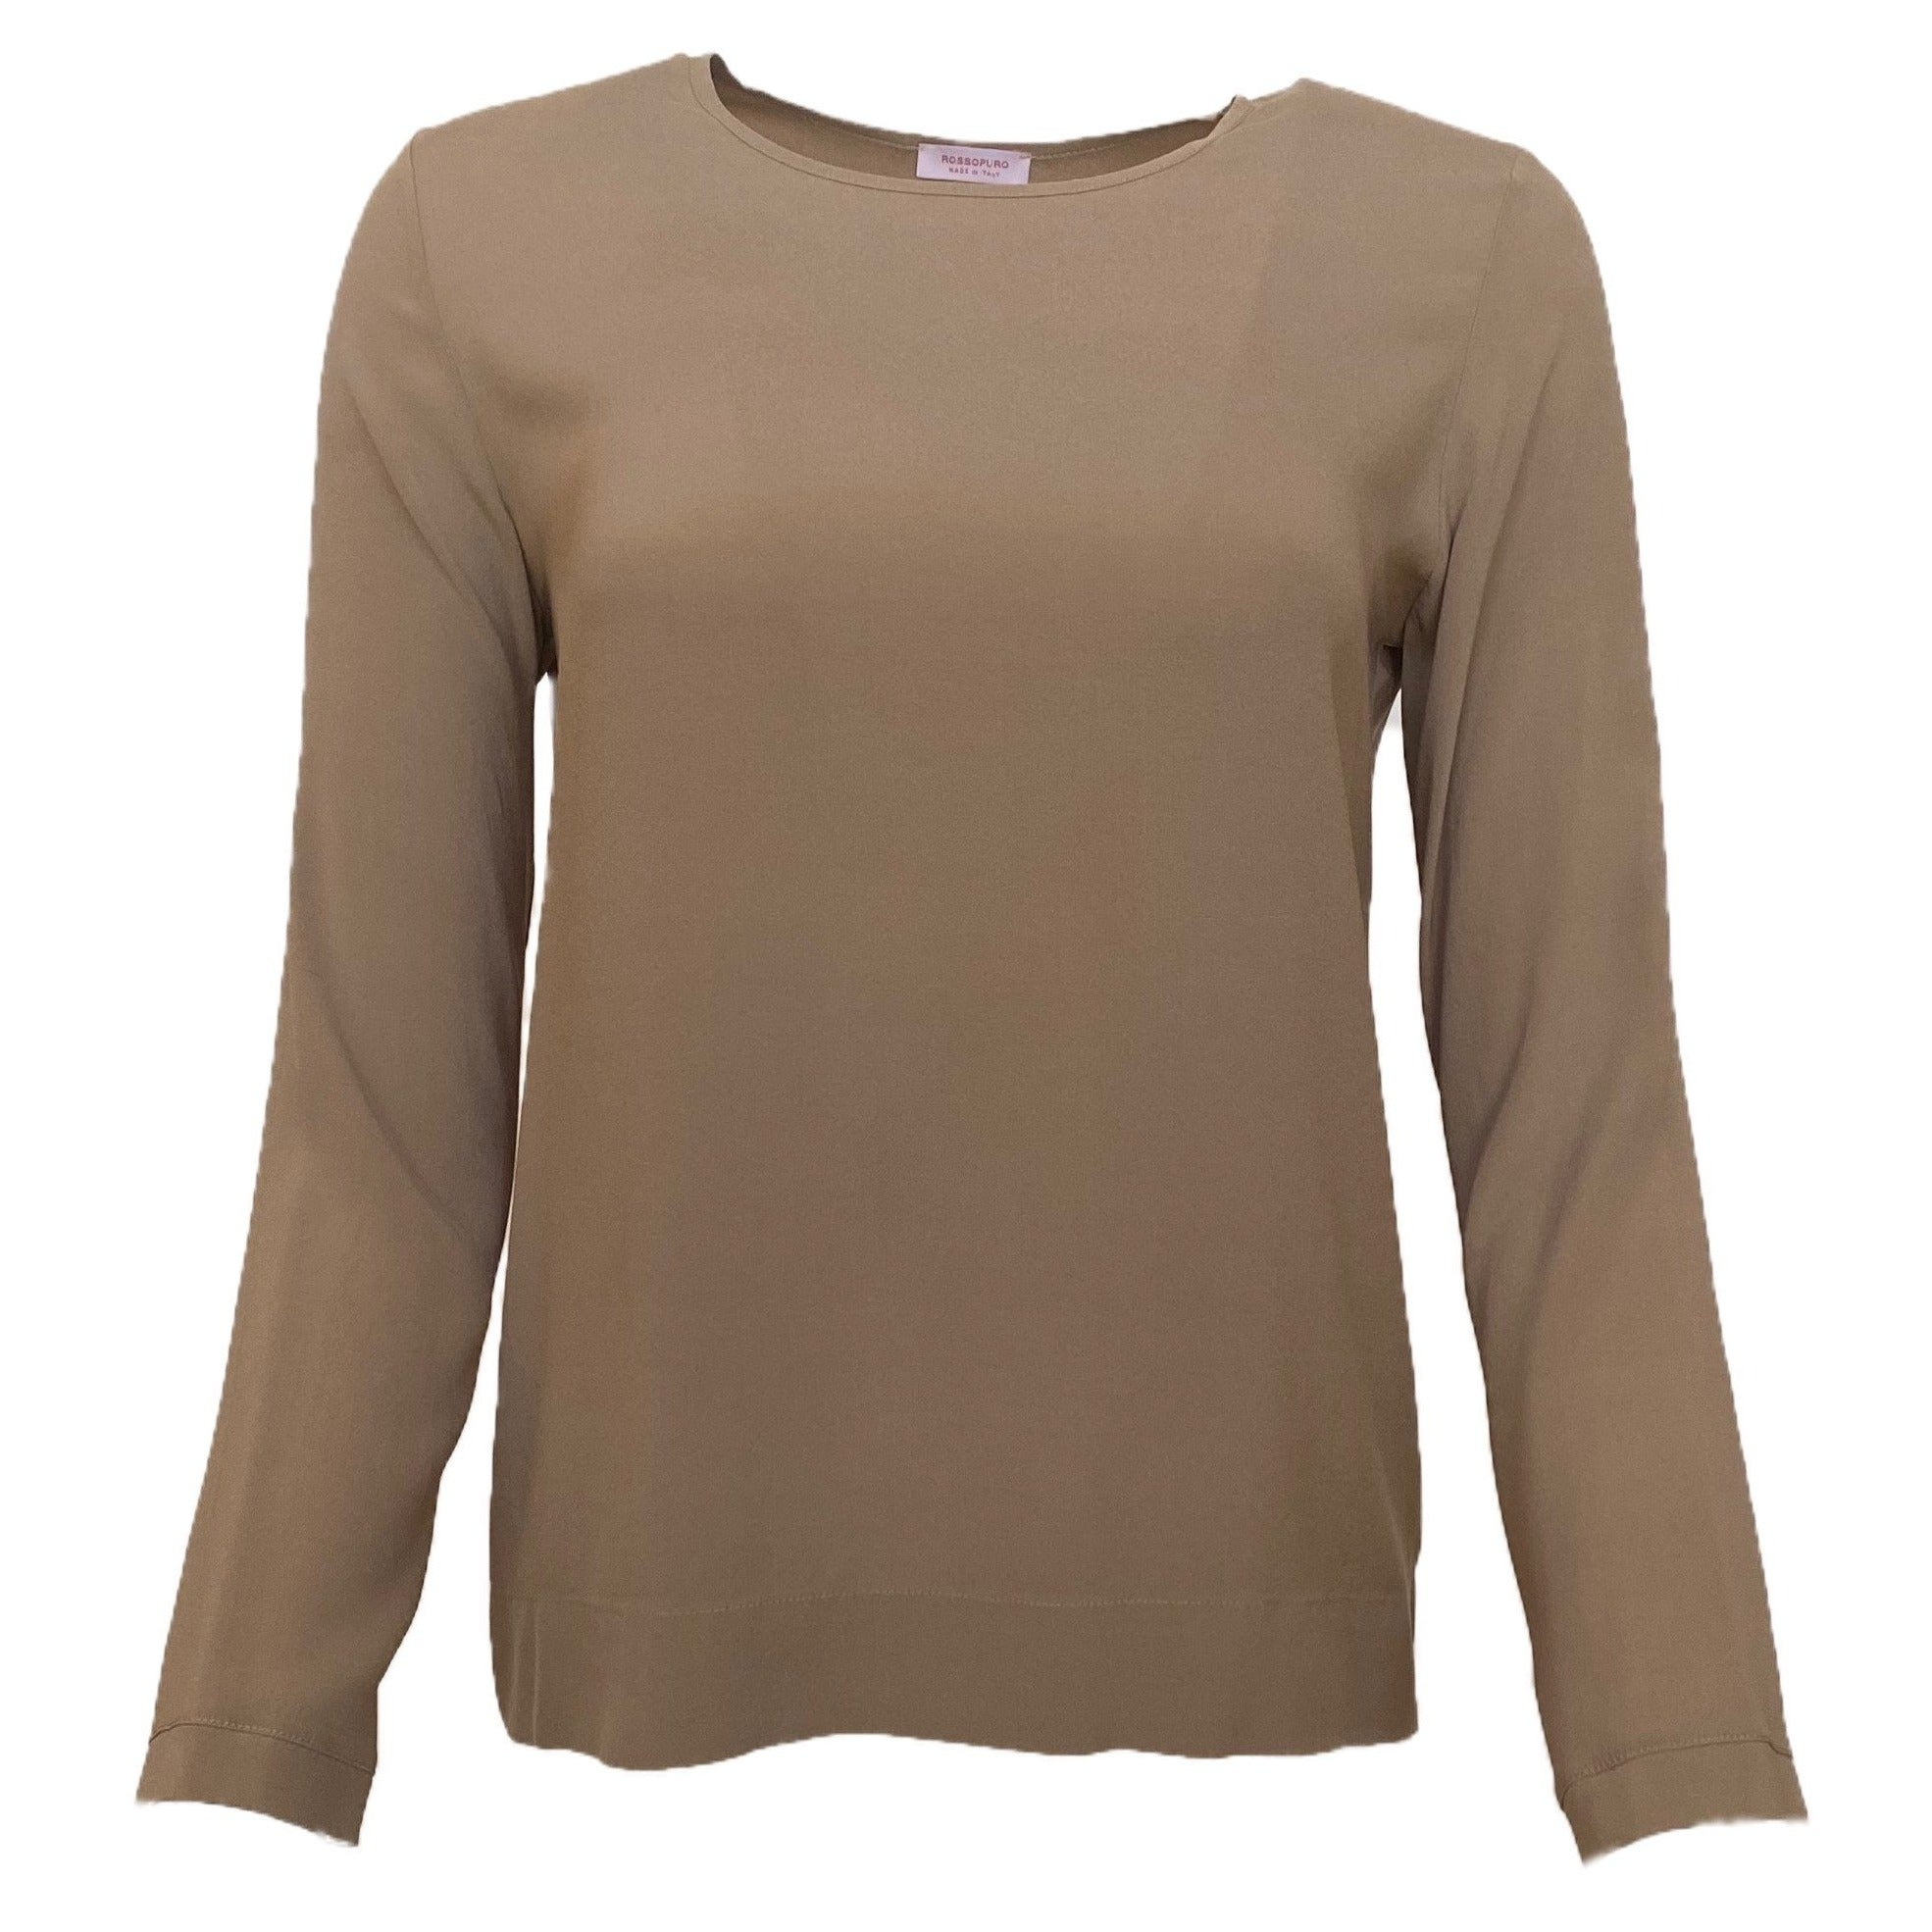 Girocollo Silk Long Sleeve Crewneck in Taupe